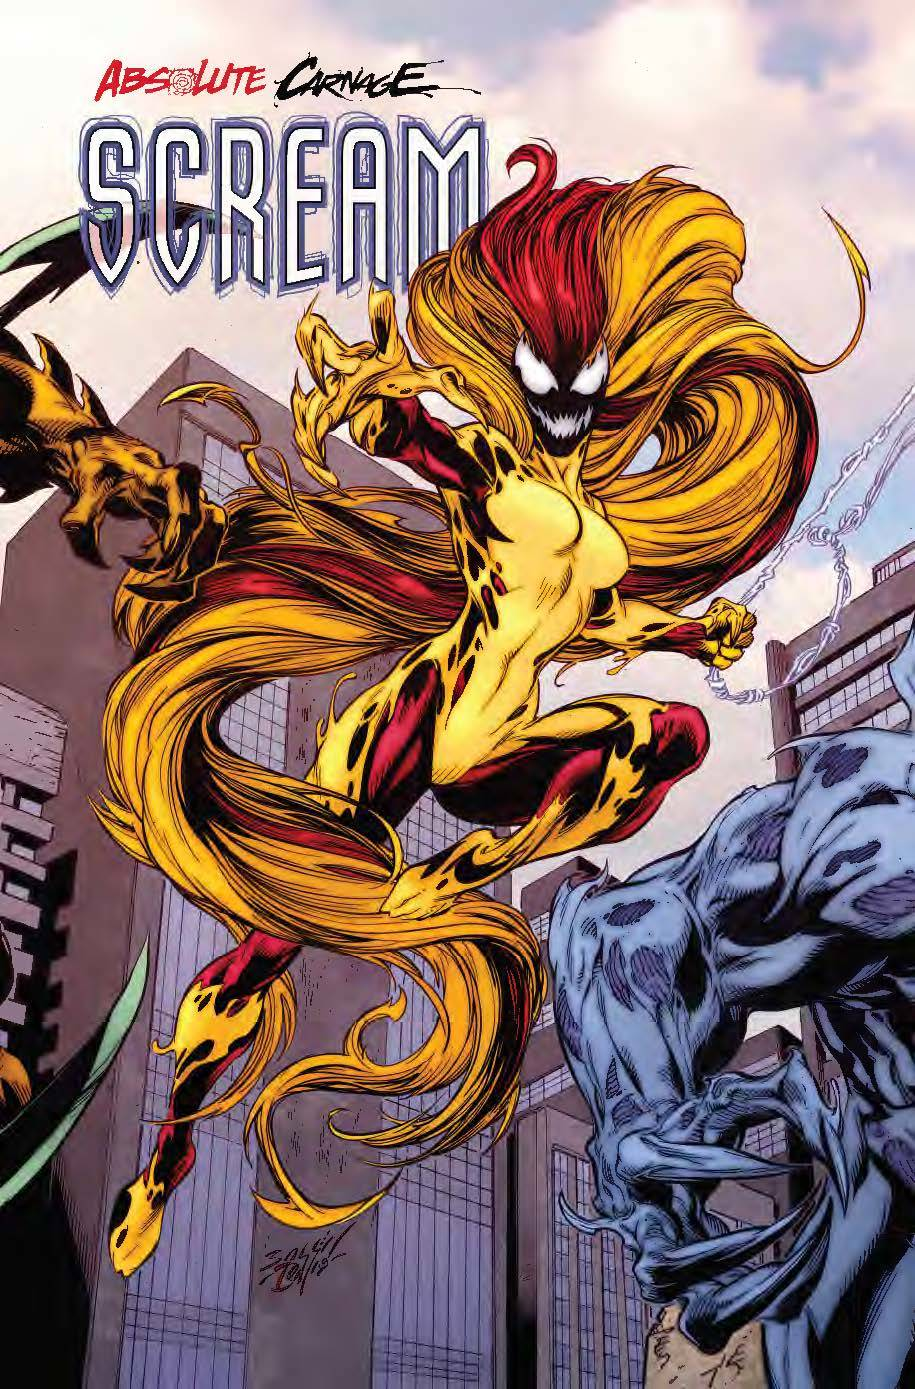 09/04/2019 ABSOLUTE CARNAGE SCREAM #2 (OF 3) BAGLEY CONNECTING VAR AC